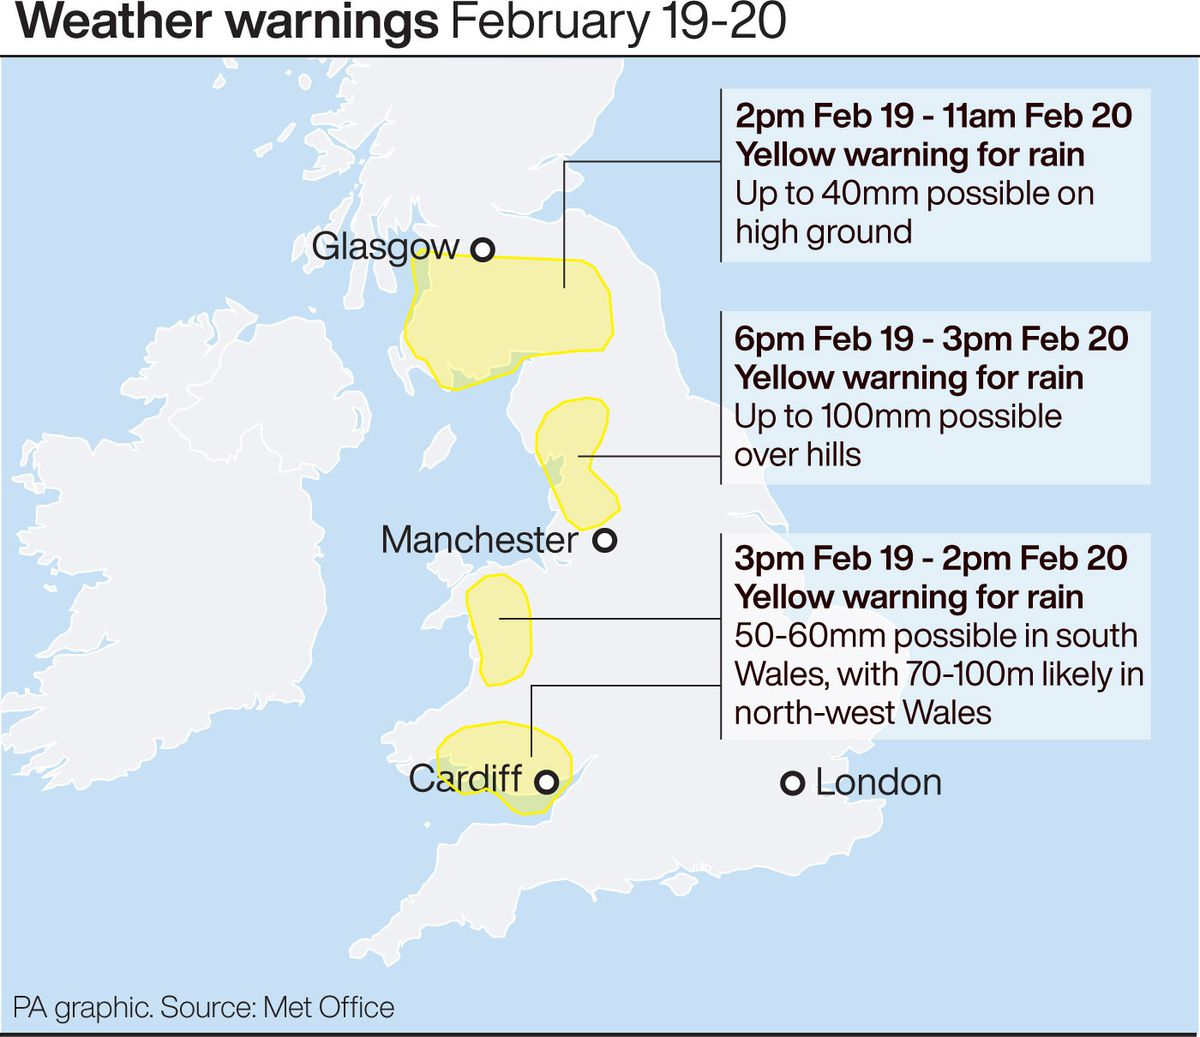 Weather warnings for February 19-20